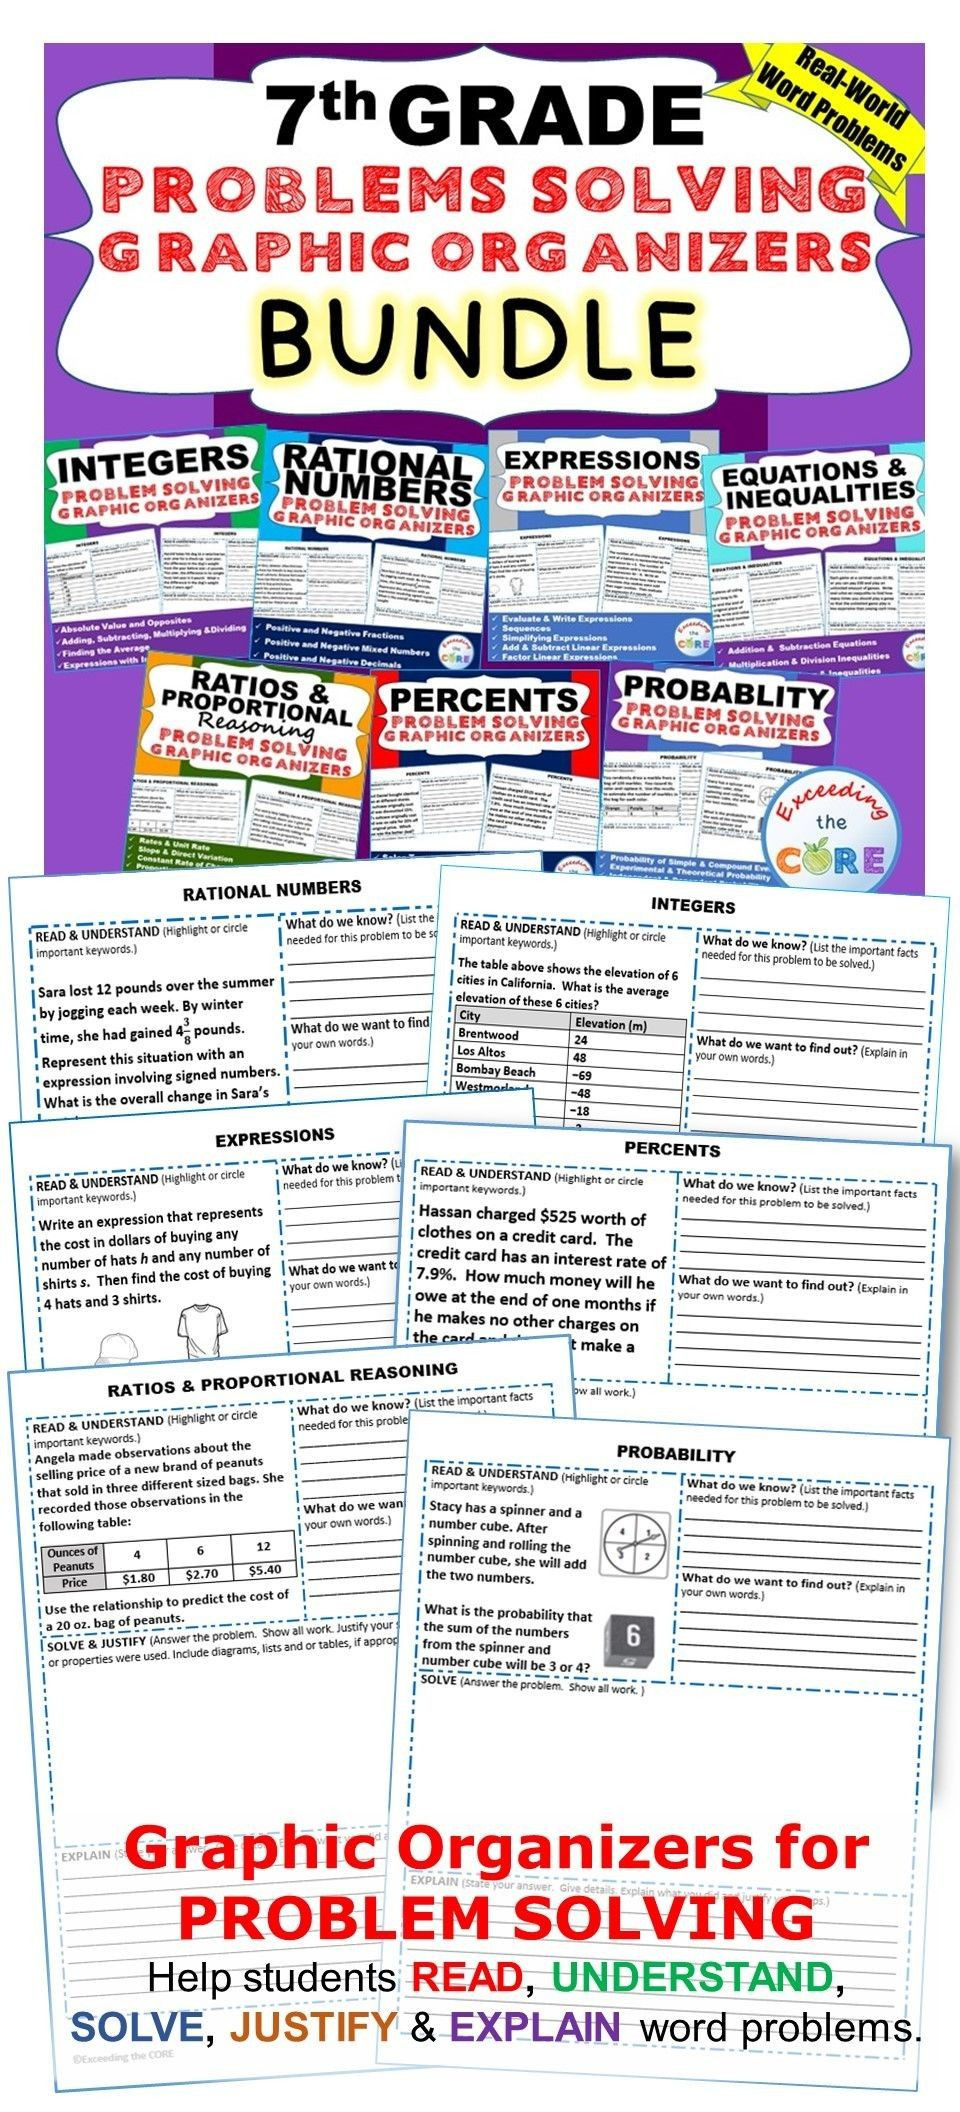 Compound Probability Worksheets 7th Grade 6 Academic Pound Probability Worksheets 7th Grade Di 2020